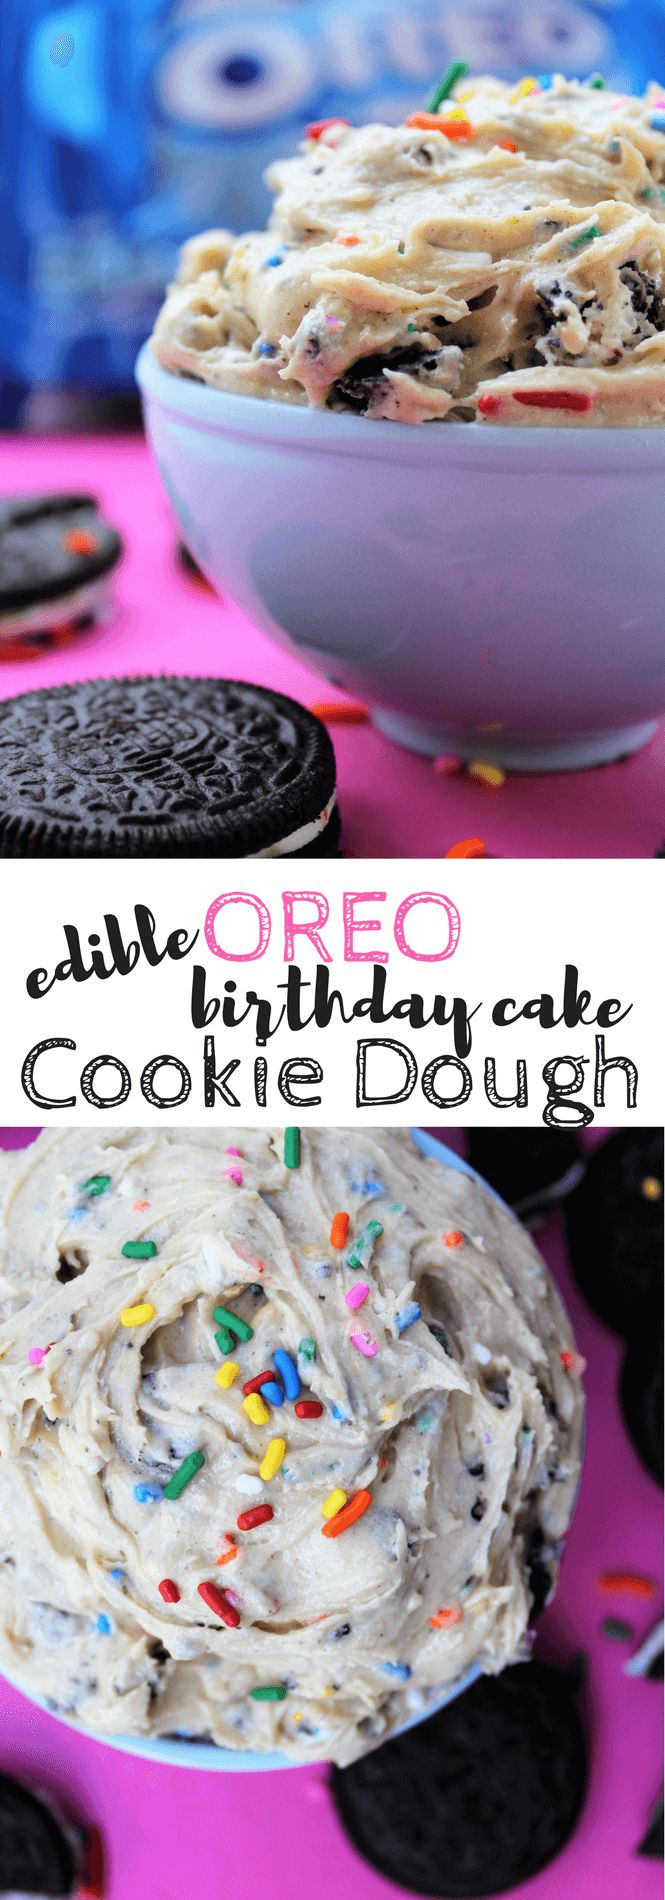 Edible OREO Birthday Cake Cookie Dough is the best of all worlds as far as dessert goes. Delicious cookie dough, crispy bits of Birthday Cake OREO Cookies, and fun sprinkles mixed into a very quick and simple snack. Oh my! #oreo #cookiedough #ediblecookiedough